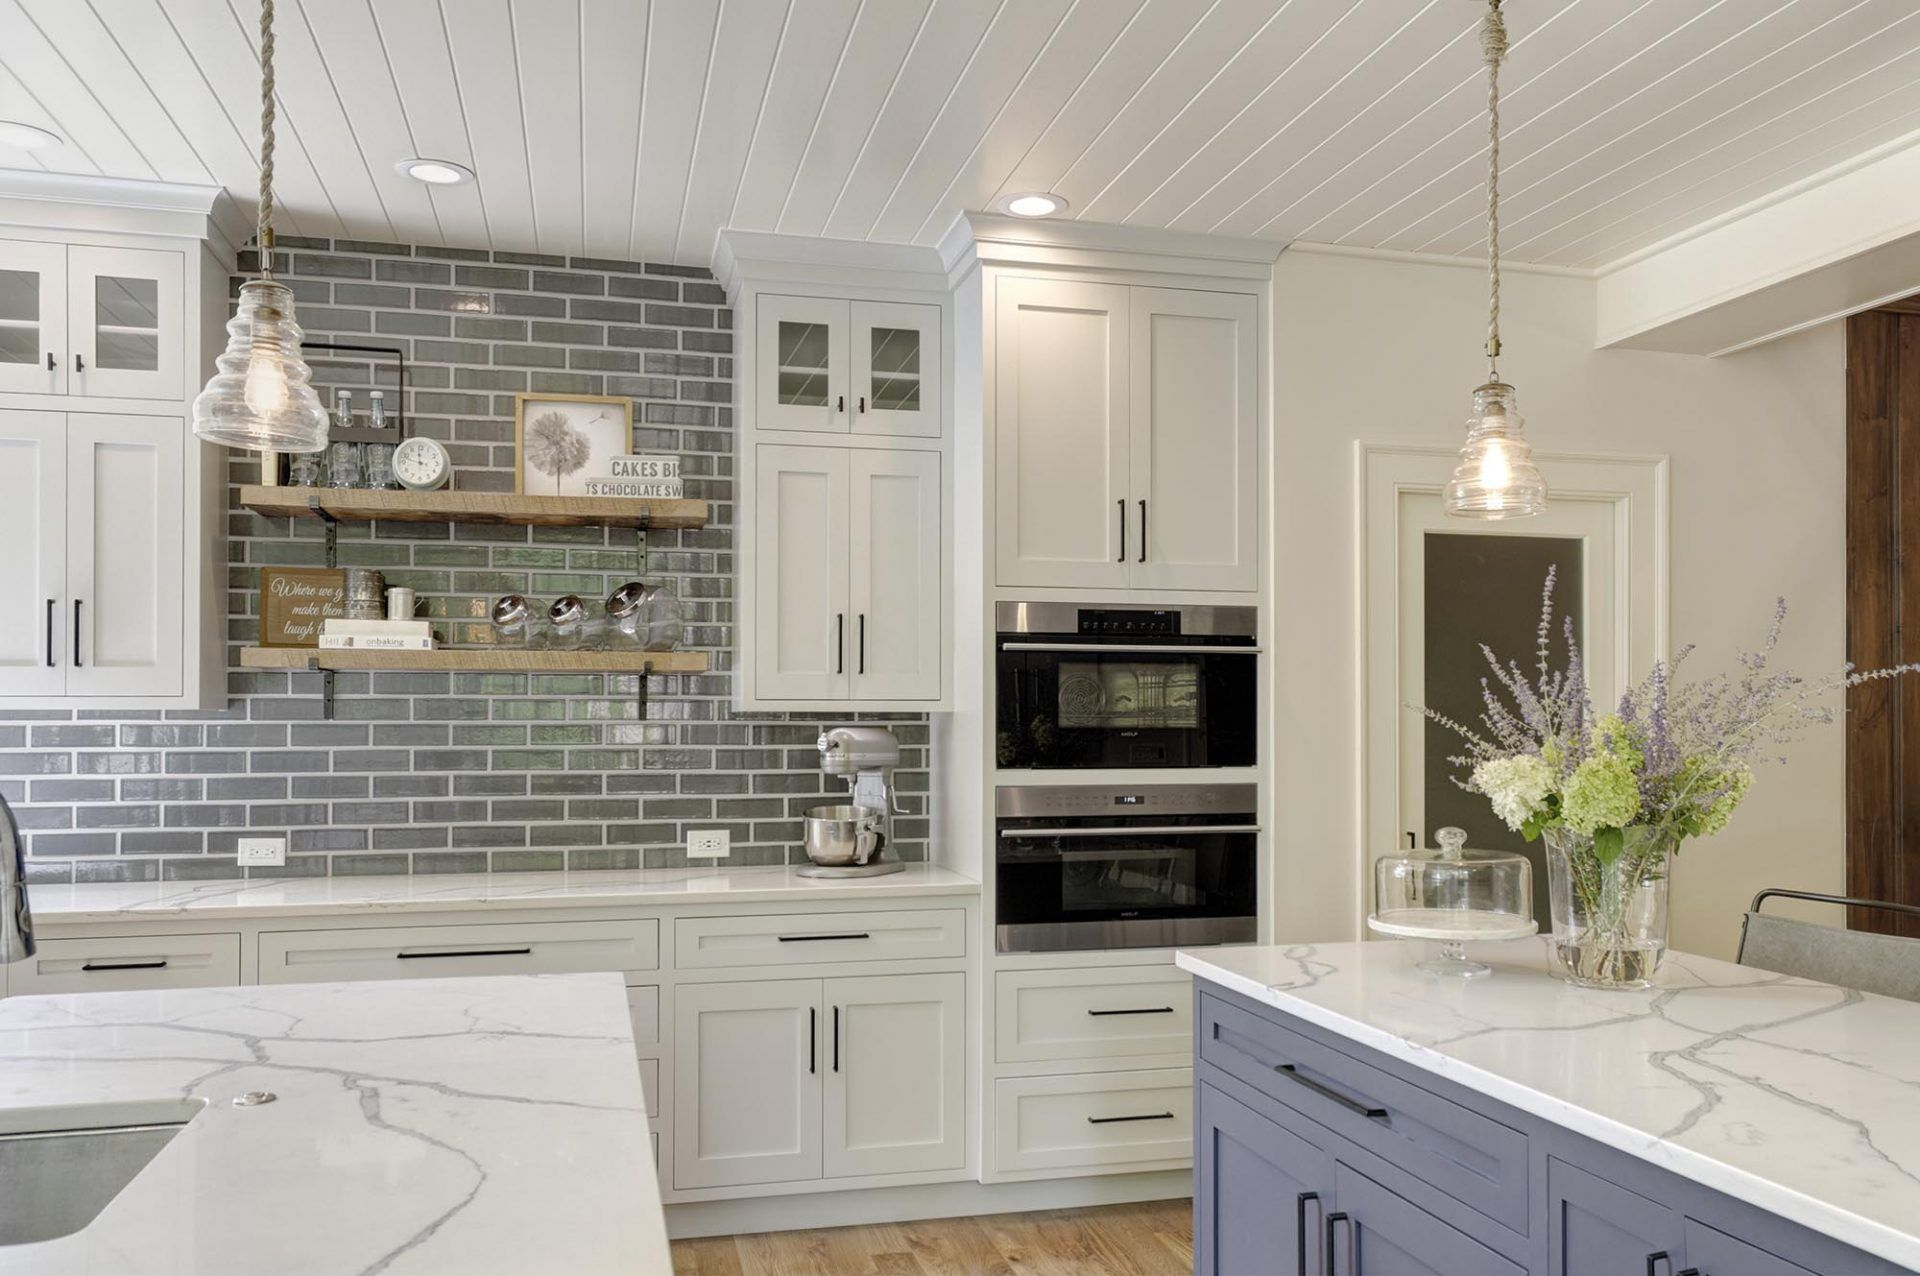 Kitchens Dave Fox Kitchen Remodeling Companies Kitchen Remodel Kitchen